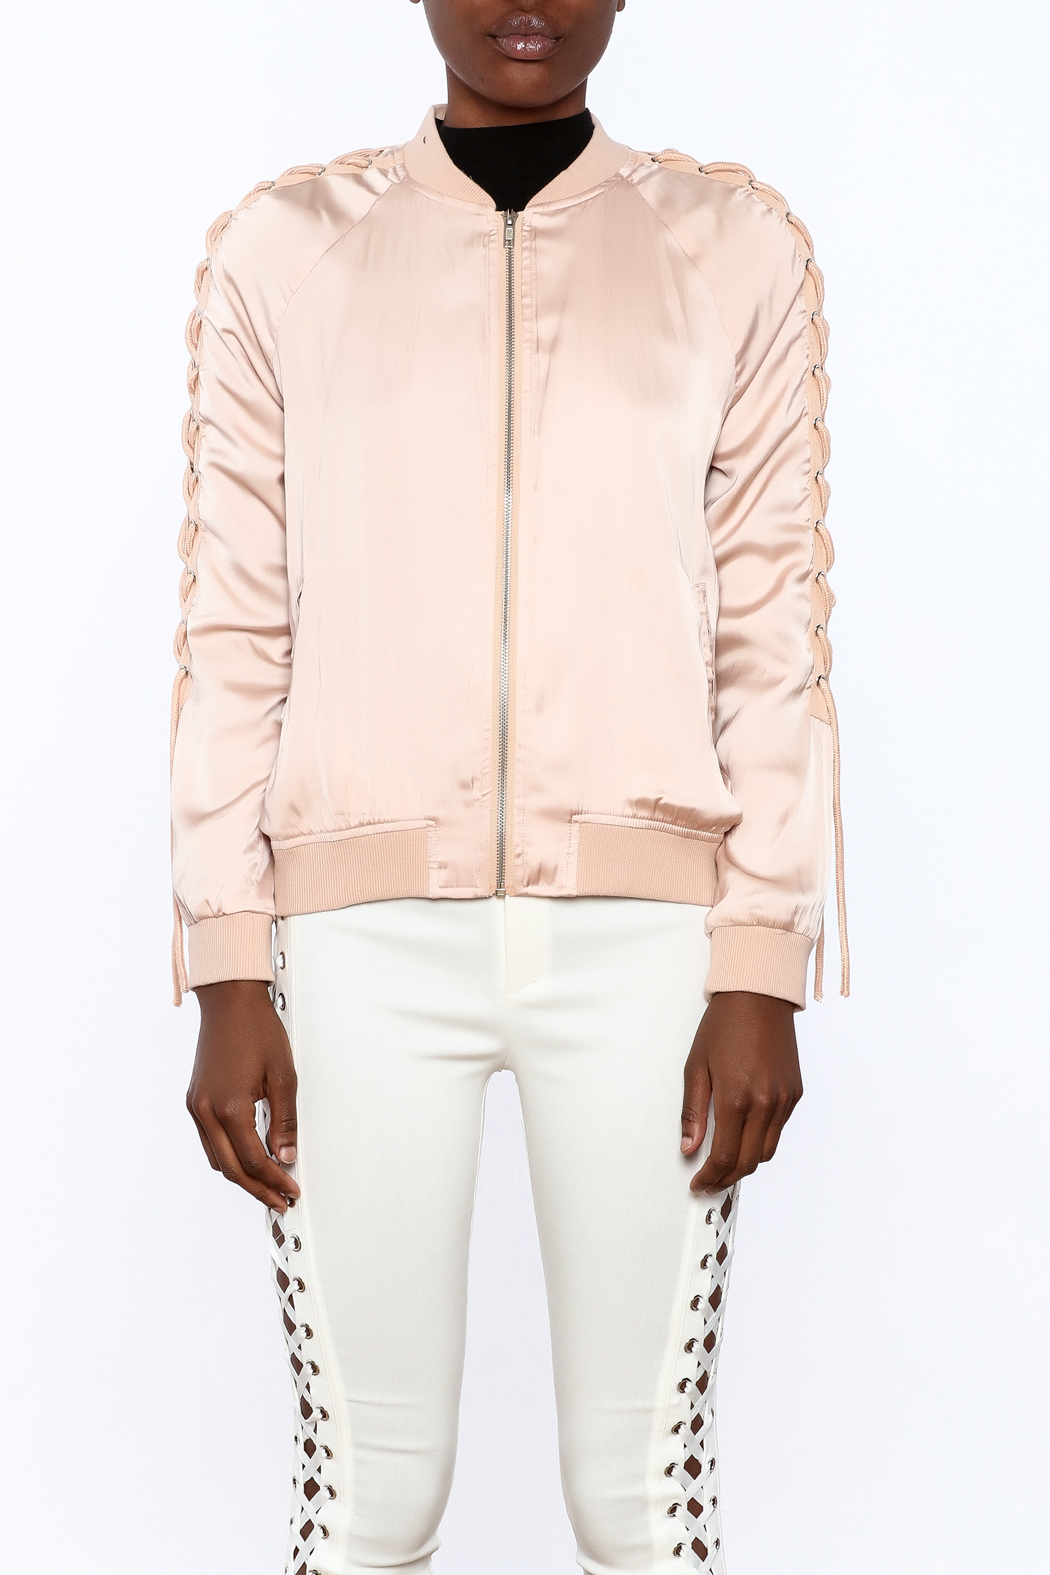 Honey Punch Pink Bomber Jacket - Side Cropped Image